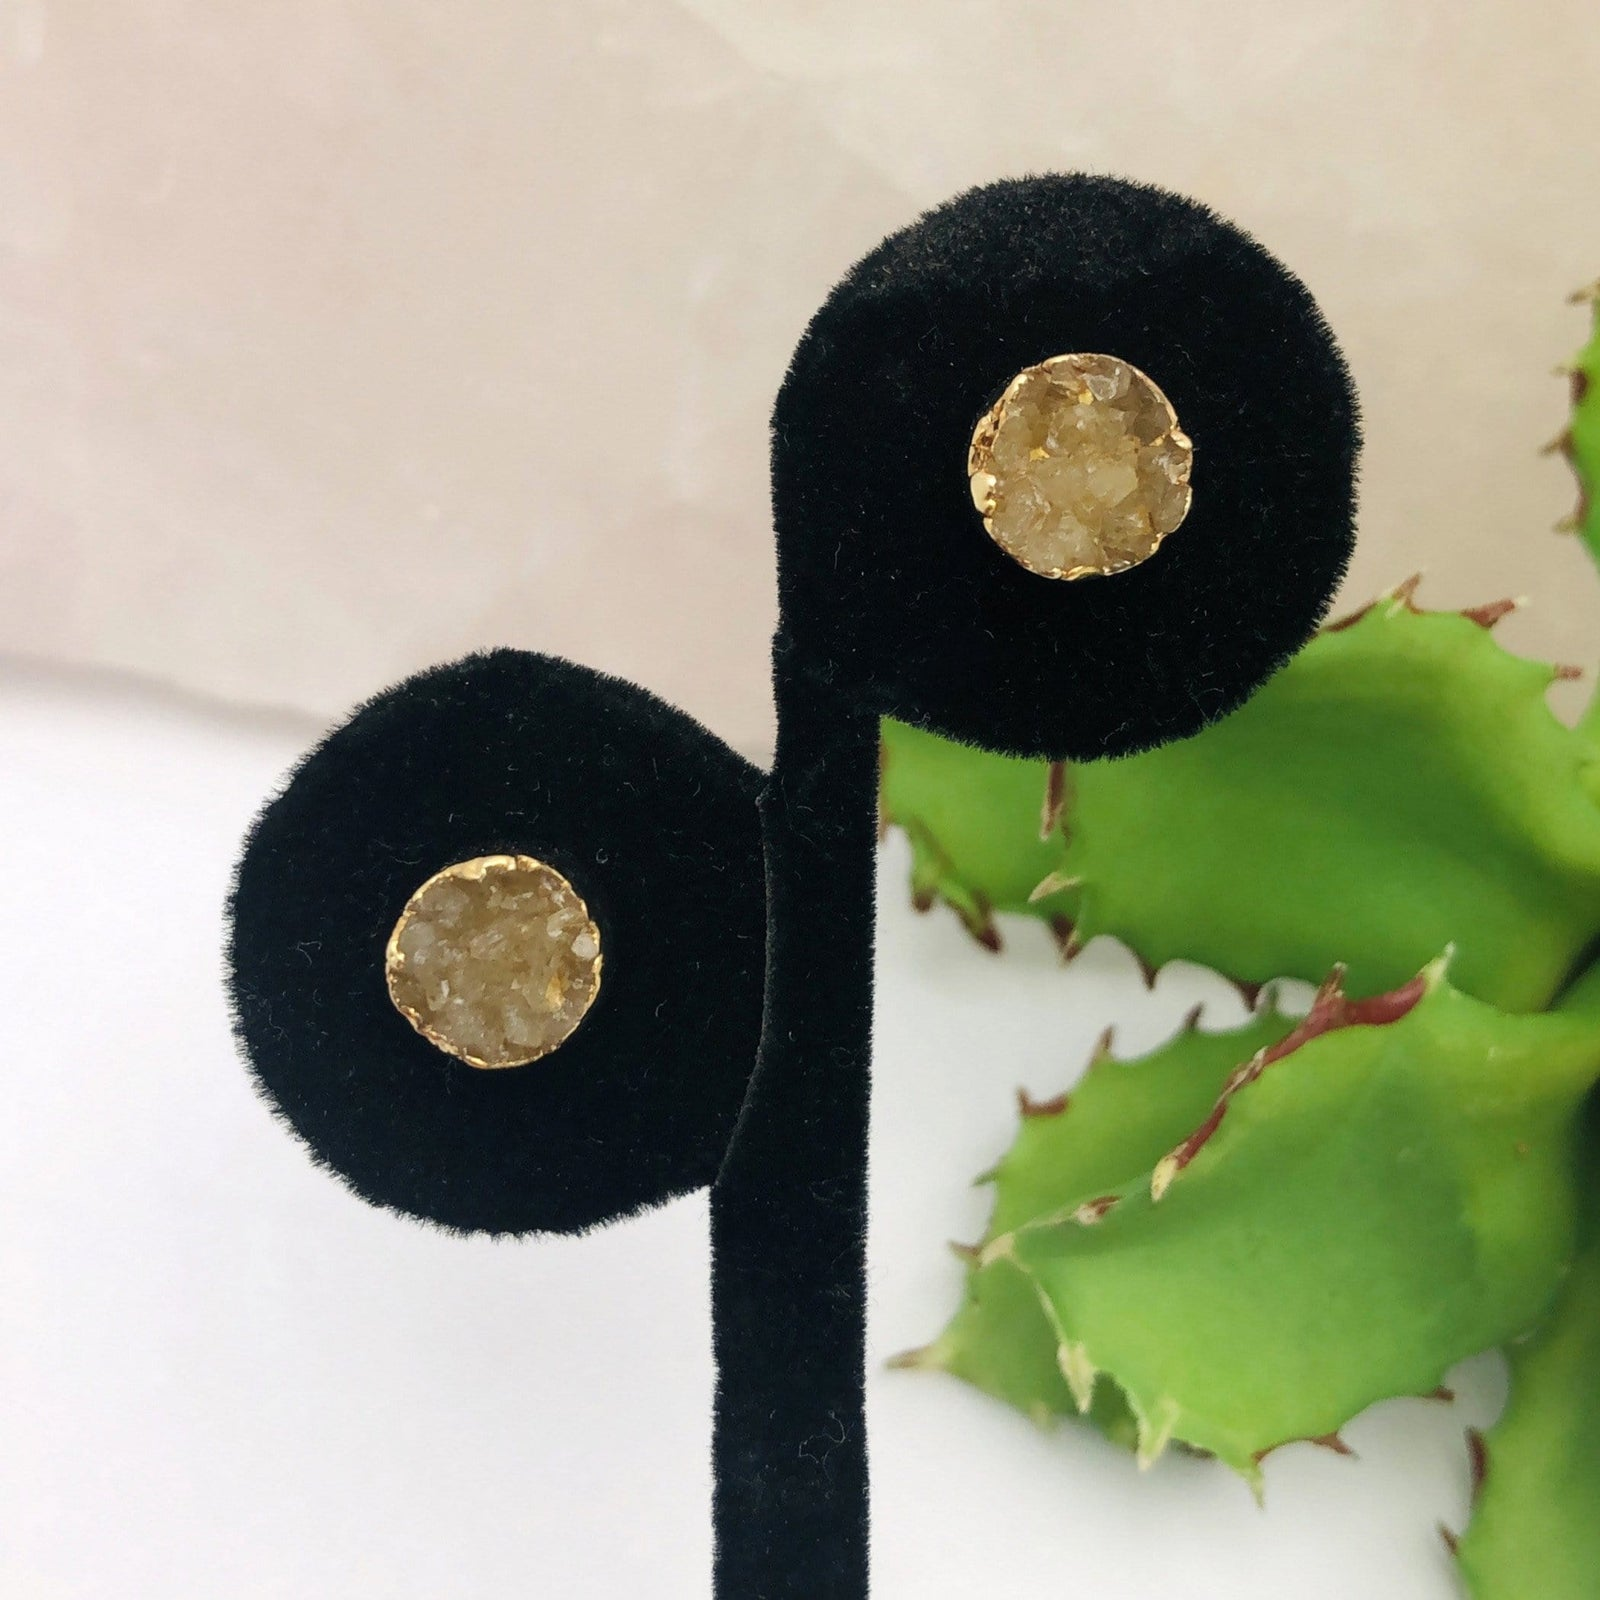 Druzy Stud Earrings in 24k Gold Electroplated - Brown Round (RK114B5-05)